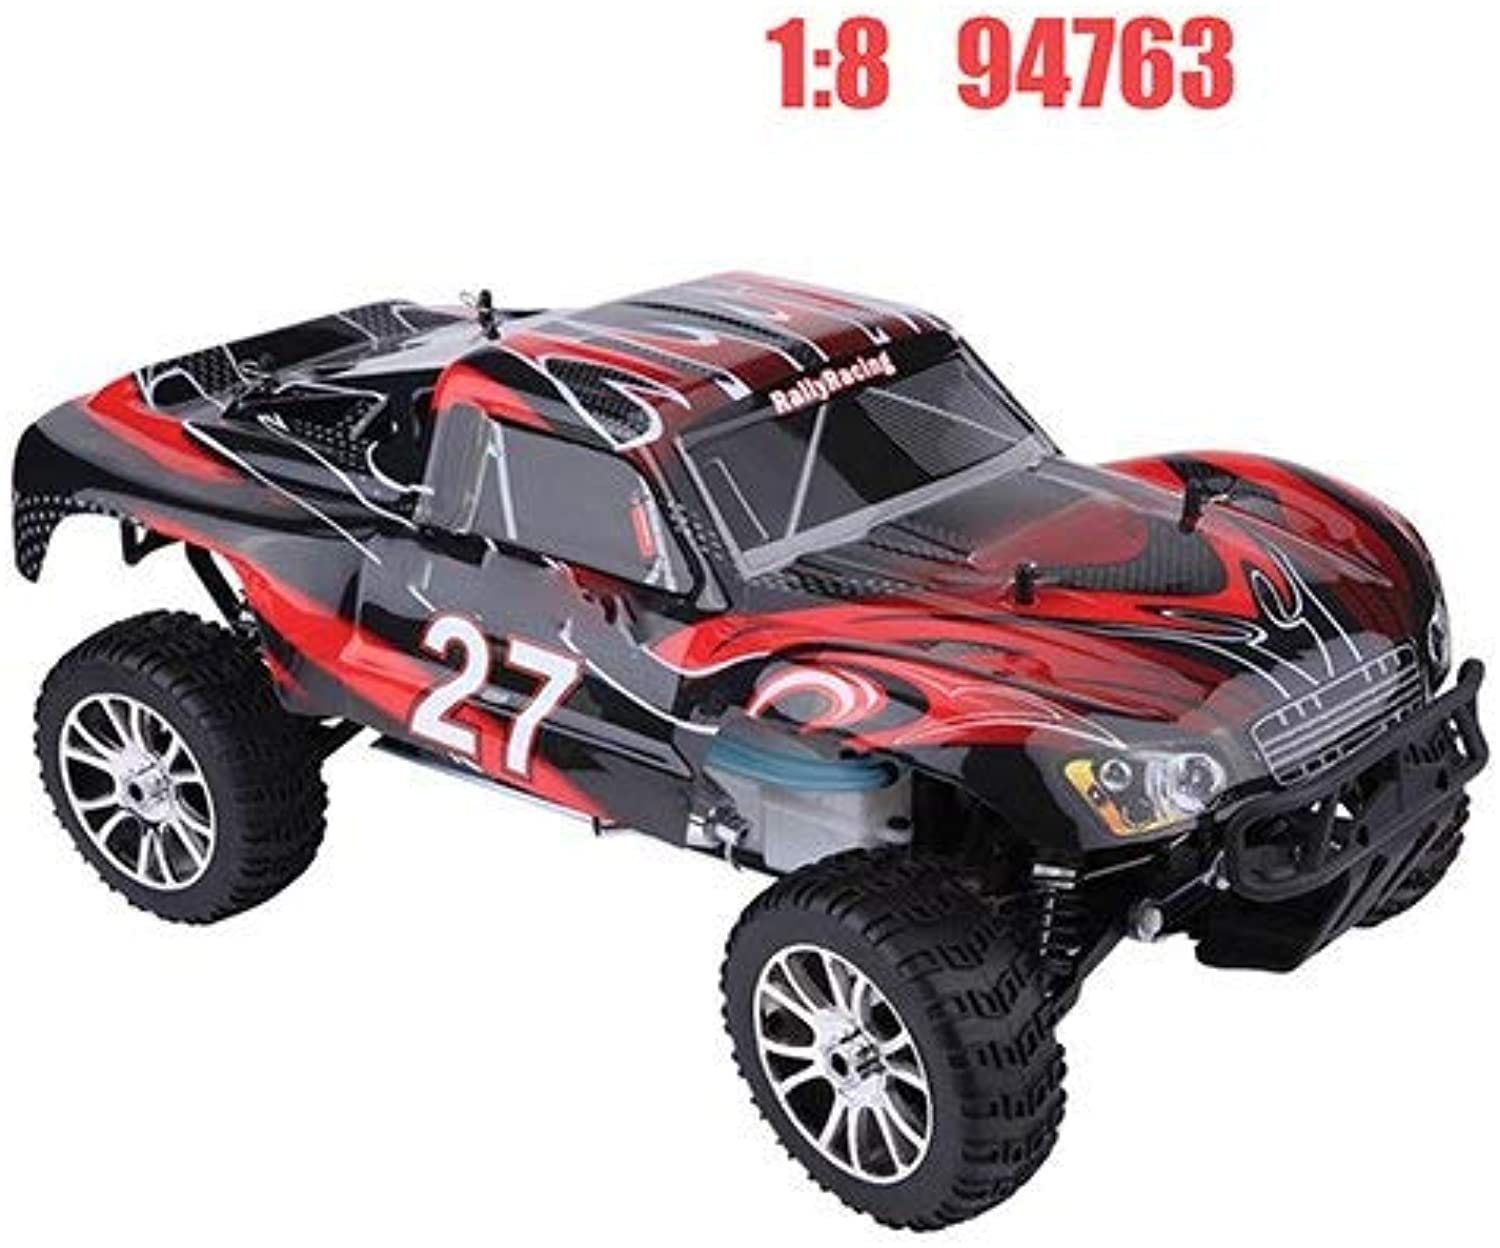 Generic 2.4GHz Remote Control Model Vehicle 1 10 Scale 4WD 18CXP Engine GP RC OffRoad Car Gas Power RC Cross Country Car Vehicle 18 94763